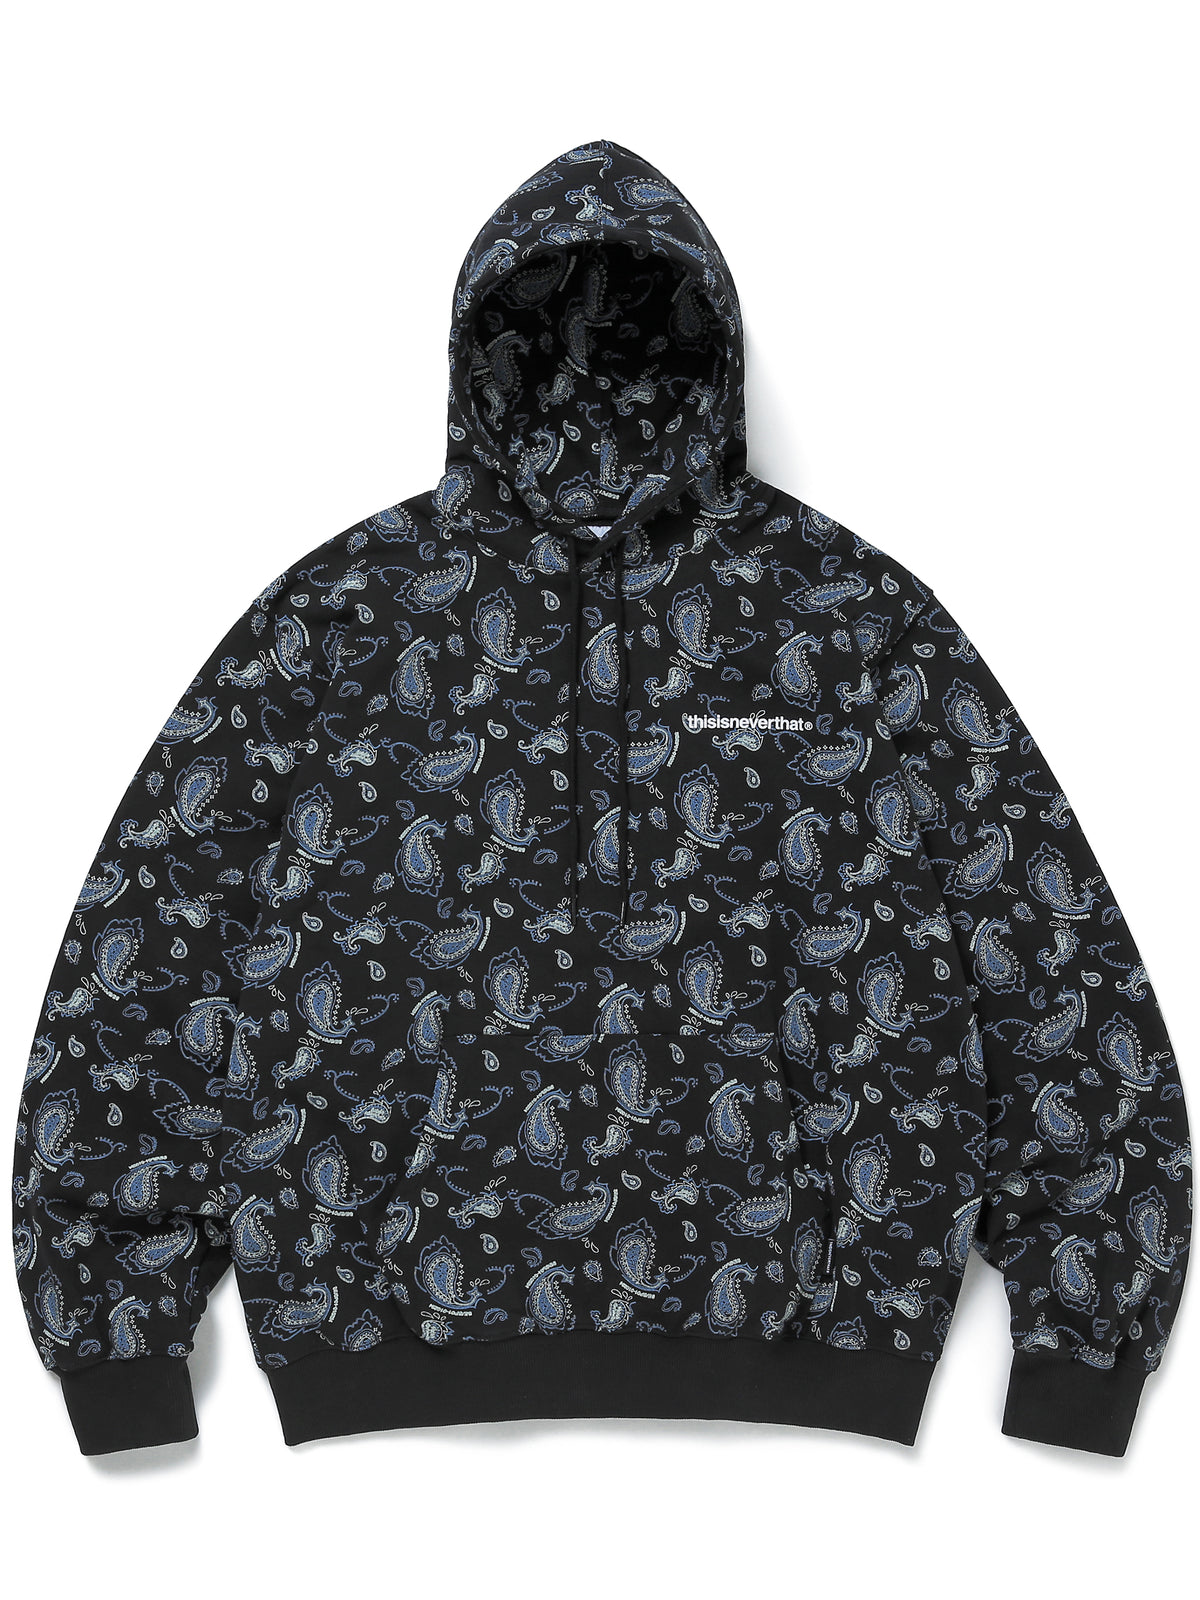 Paisley hooded Sweatshirt - thisisneverthat